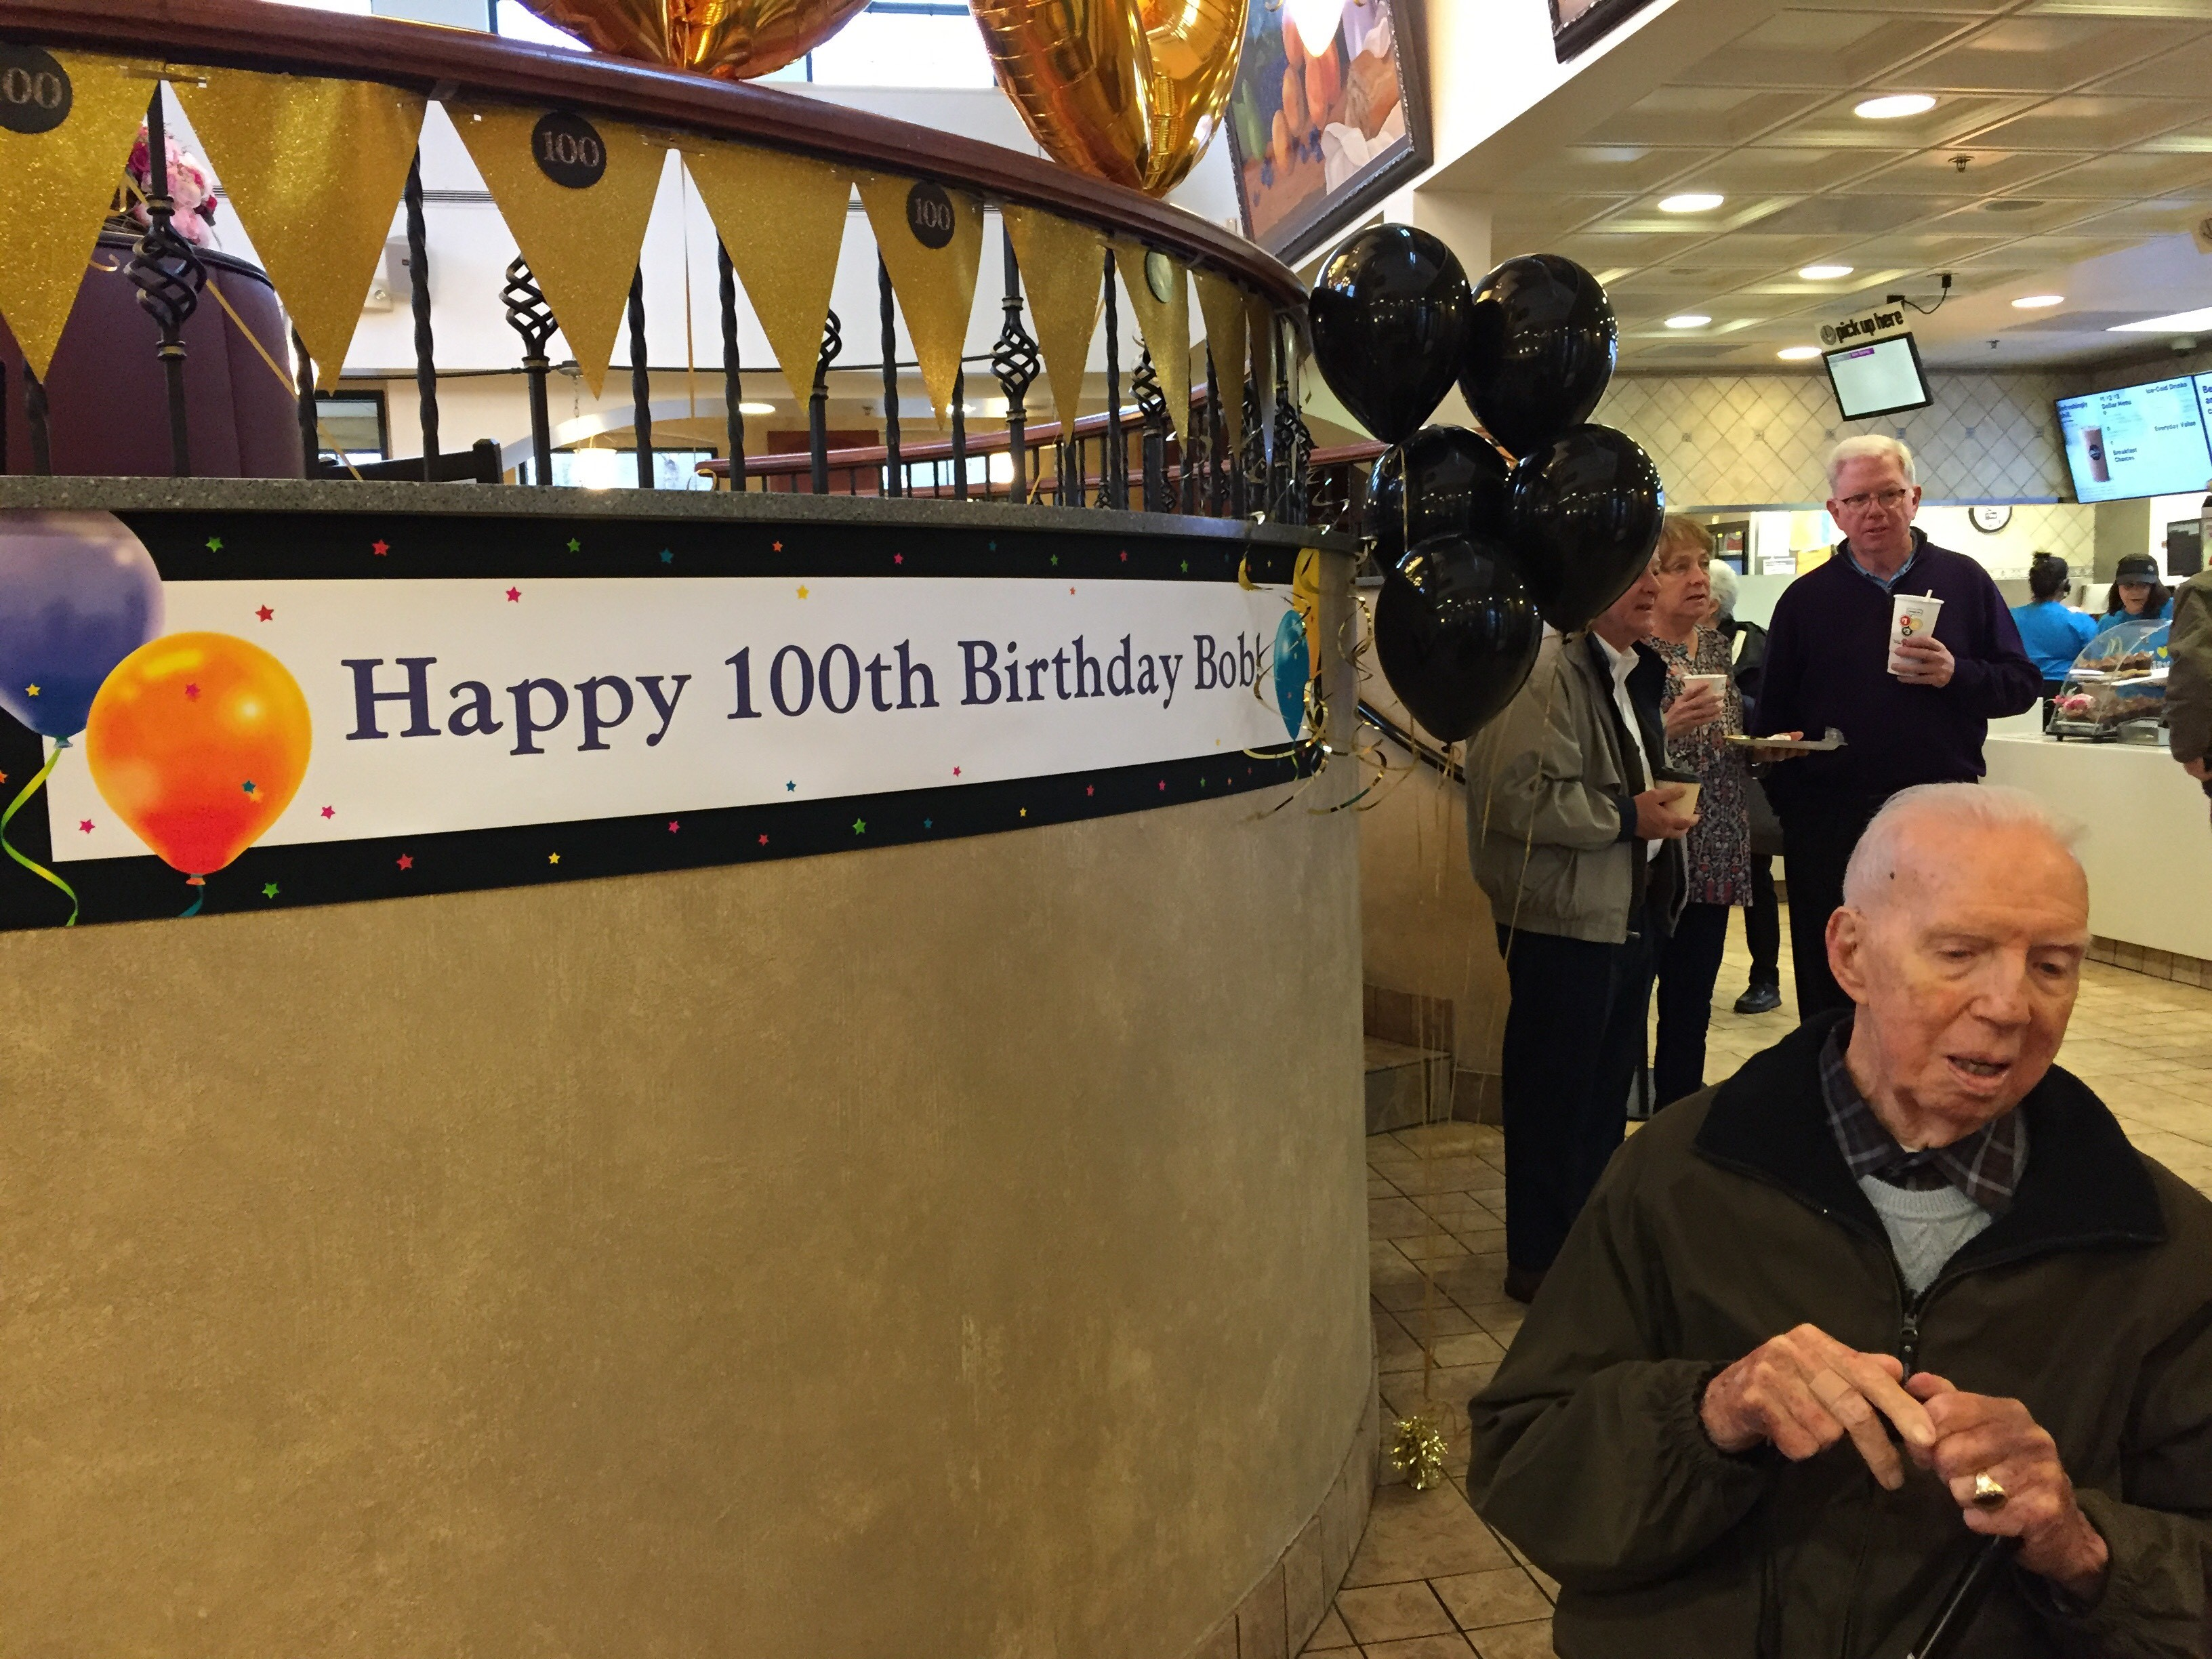 "<div class=""meta image-caption""><div class=""origin-logo origin-image wls""><span>WLS</span></div><span class=""caption-text"">Bob McCarthy celebrates his 100th birthday at the McDonald's on York Road in Hinsdale.</span></div>"